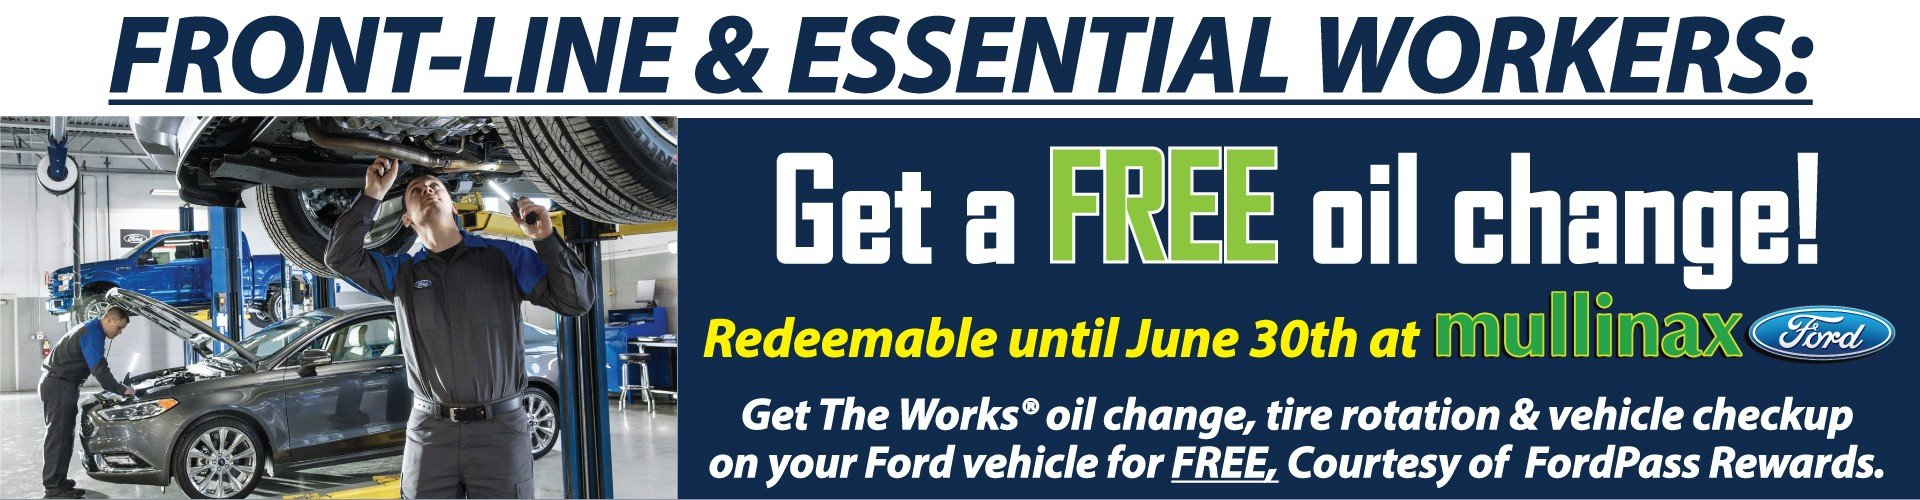 Free Oil Change Essential Workers at Mullinax Ford